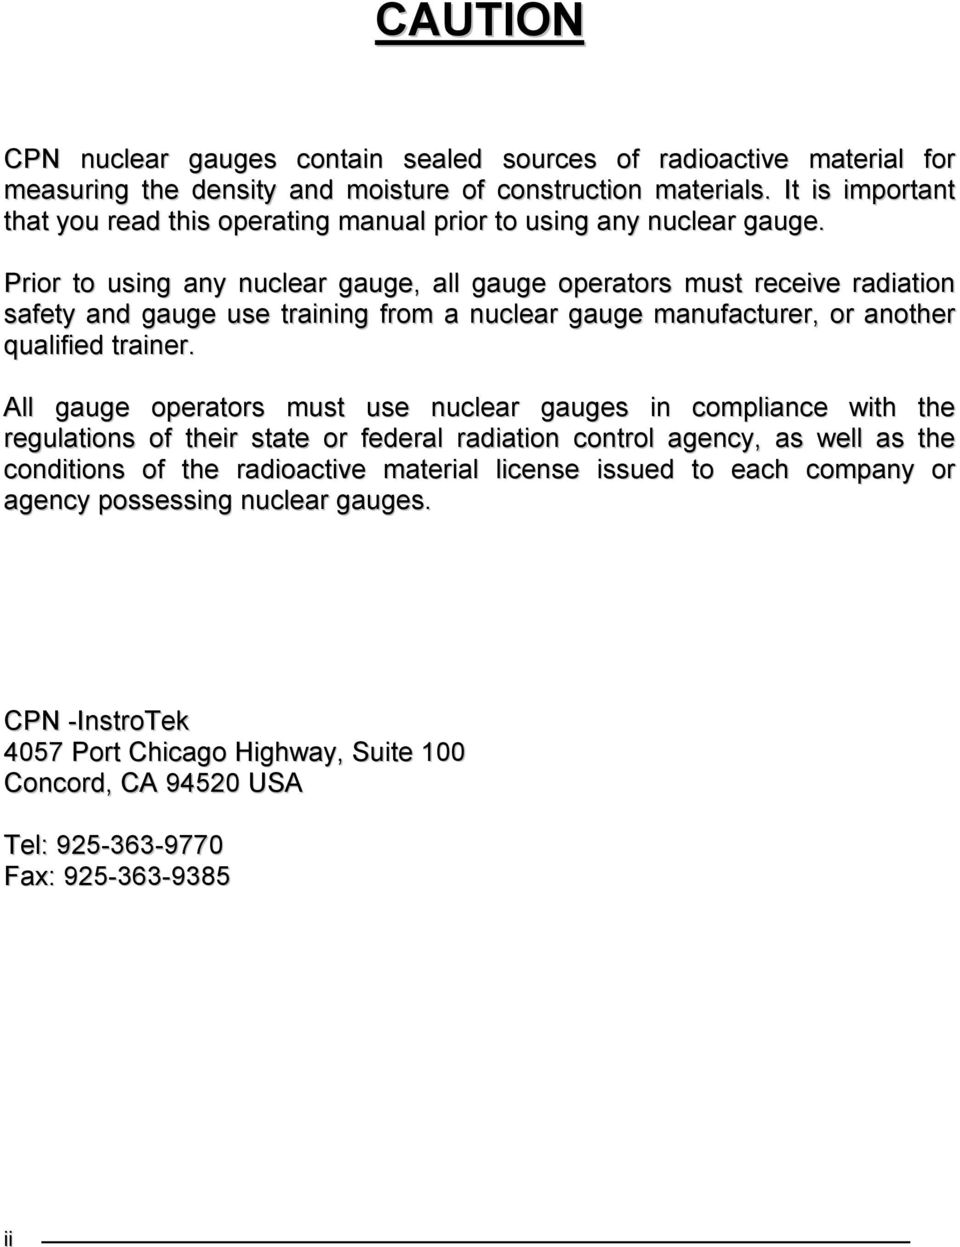 Prior to using any nuclear gauge, all gauge operators must receive radiation safety and gauge use training from a nuclear gauge manufacturer, or another qualified trainer.